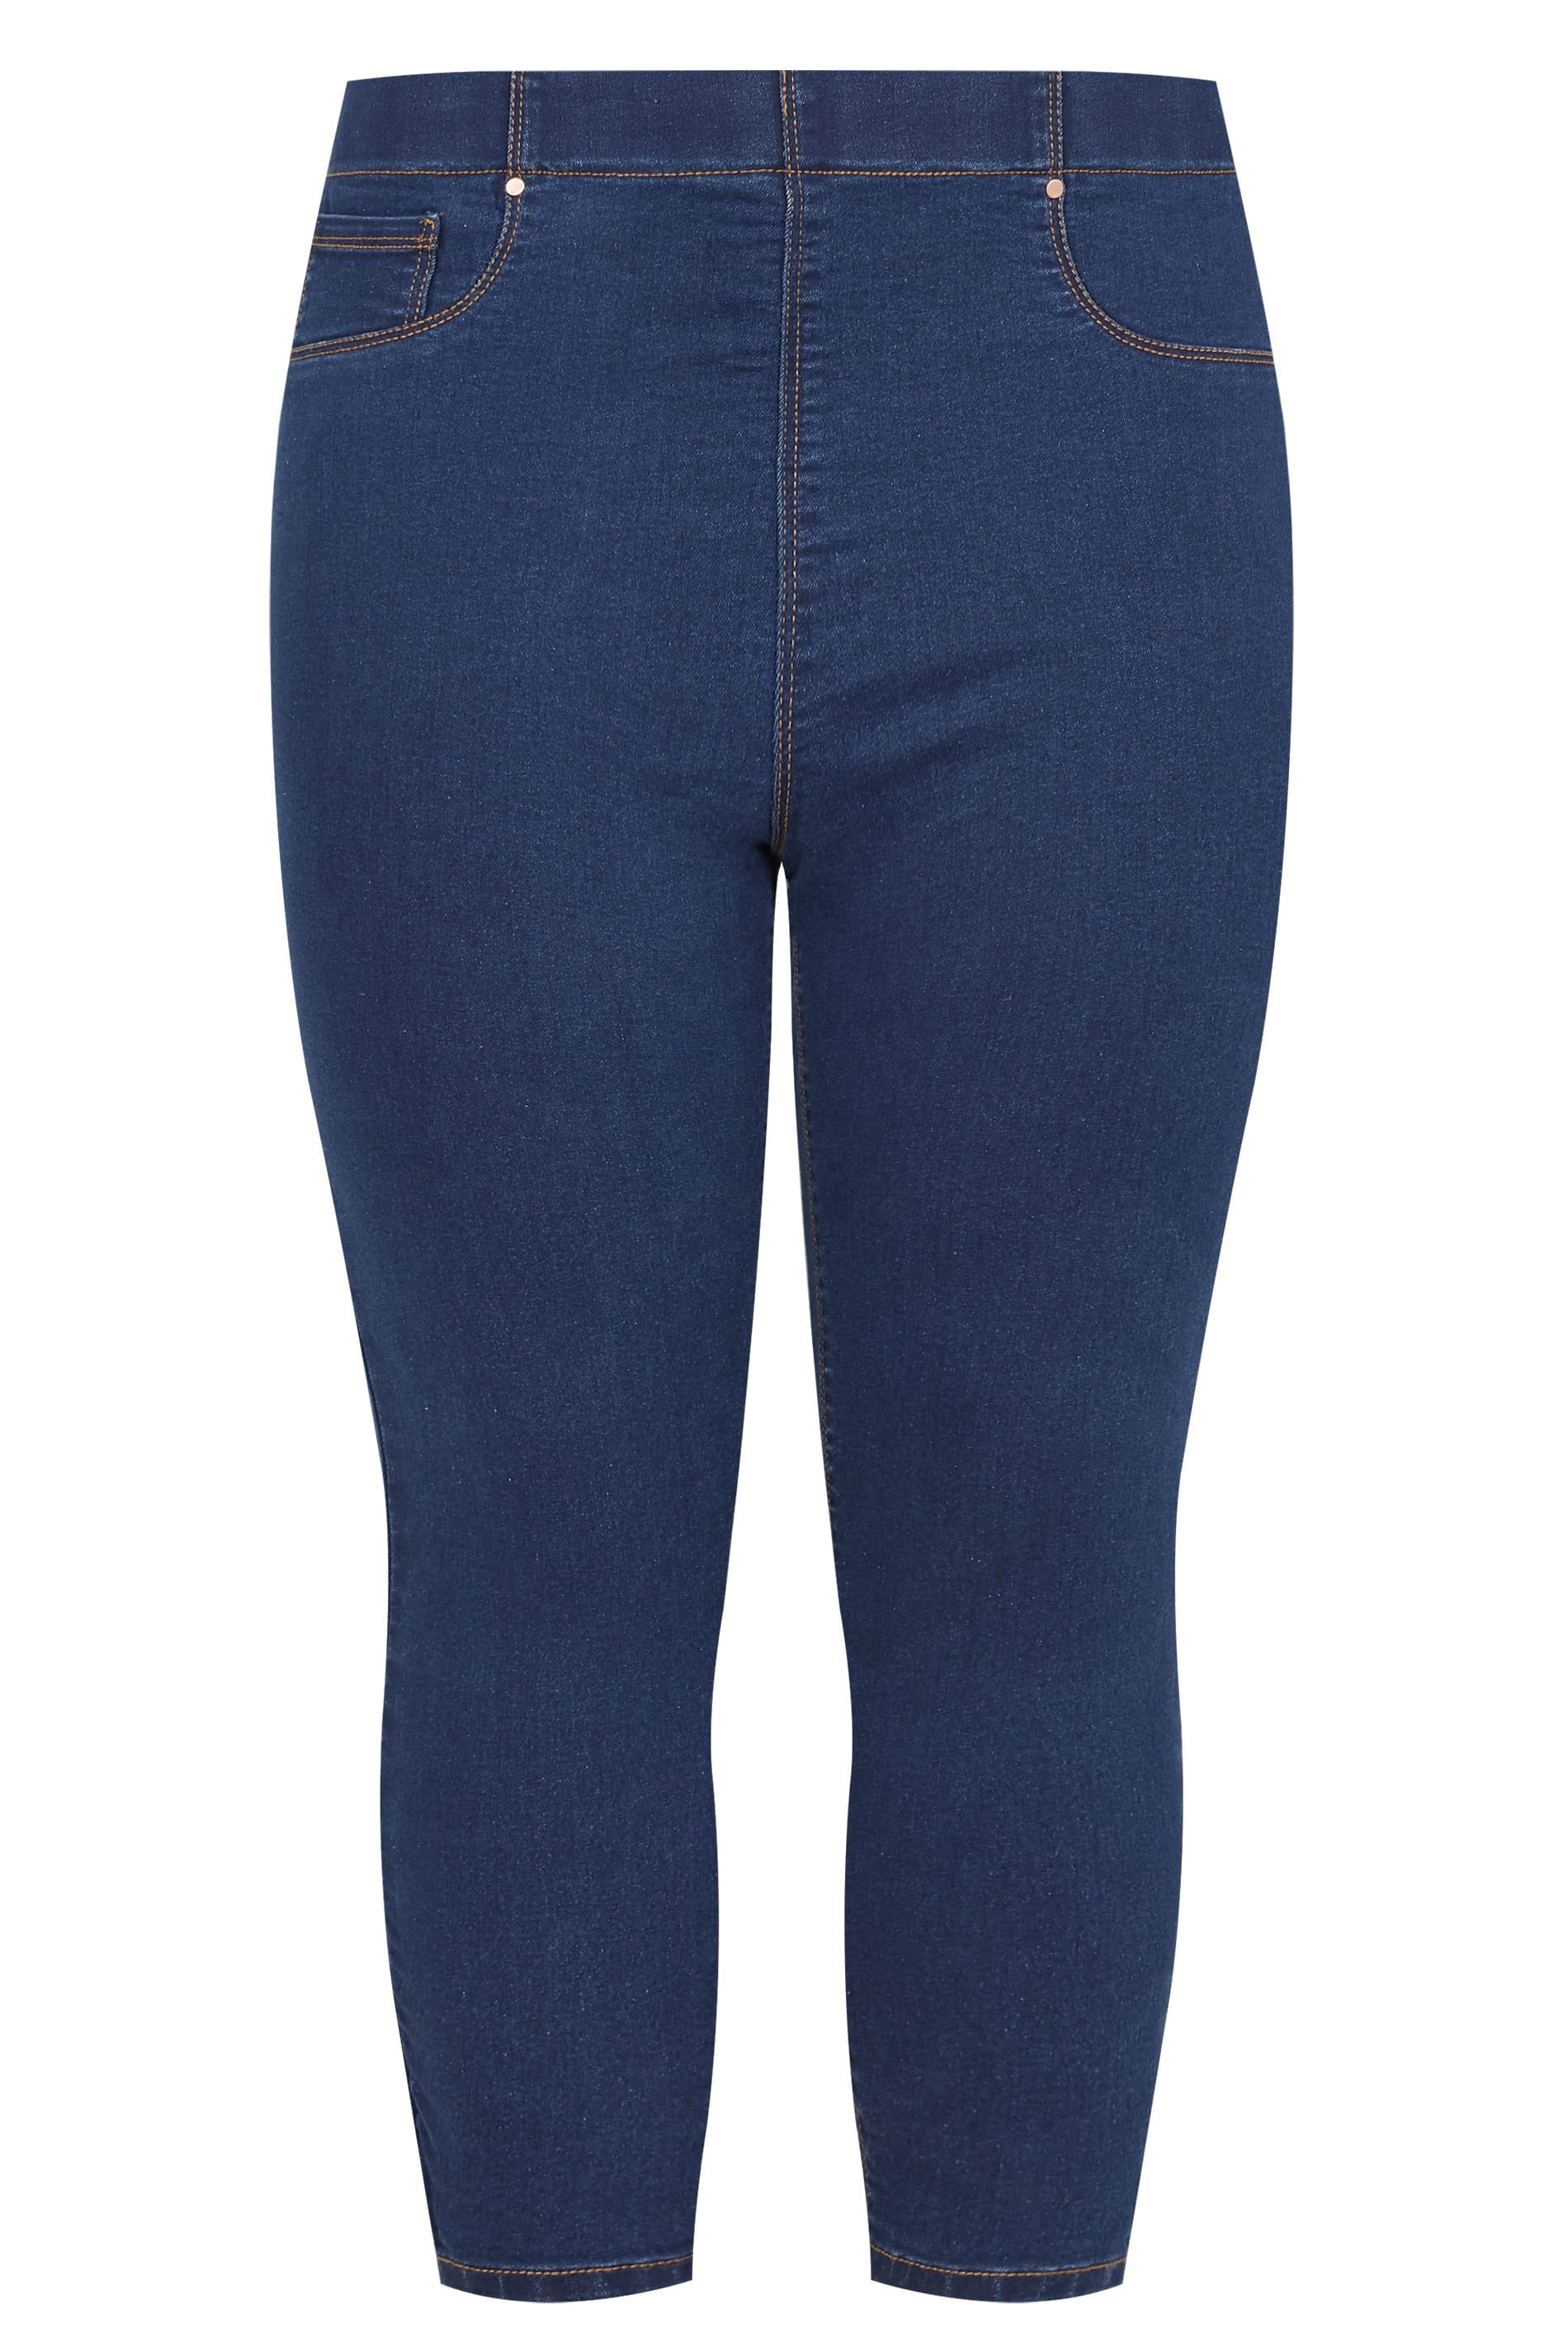 Yours-Clothing-Women-039-s-Plus-Size-Blue-Cropped-Jenny-Jeggings miniatuur 3